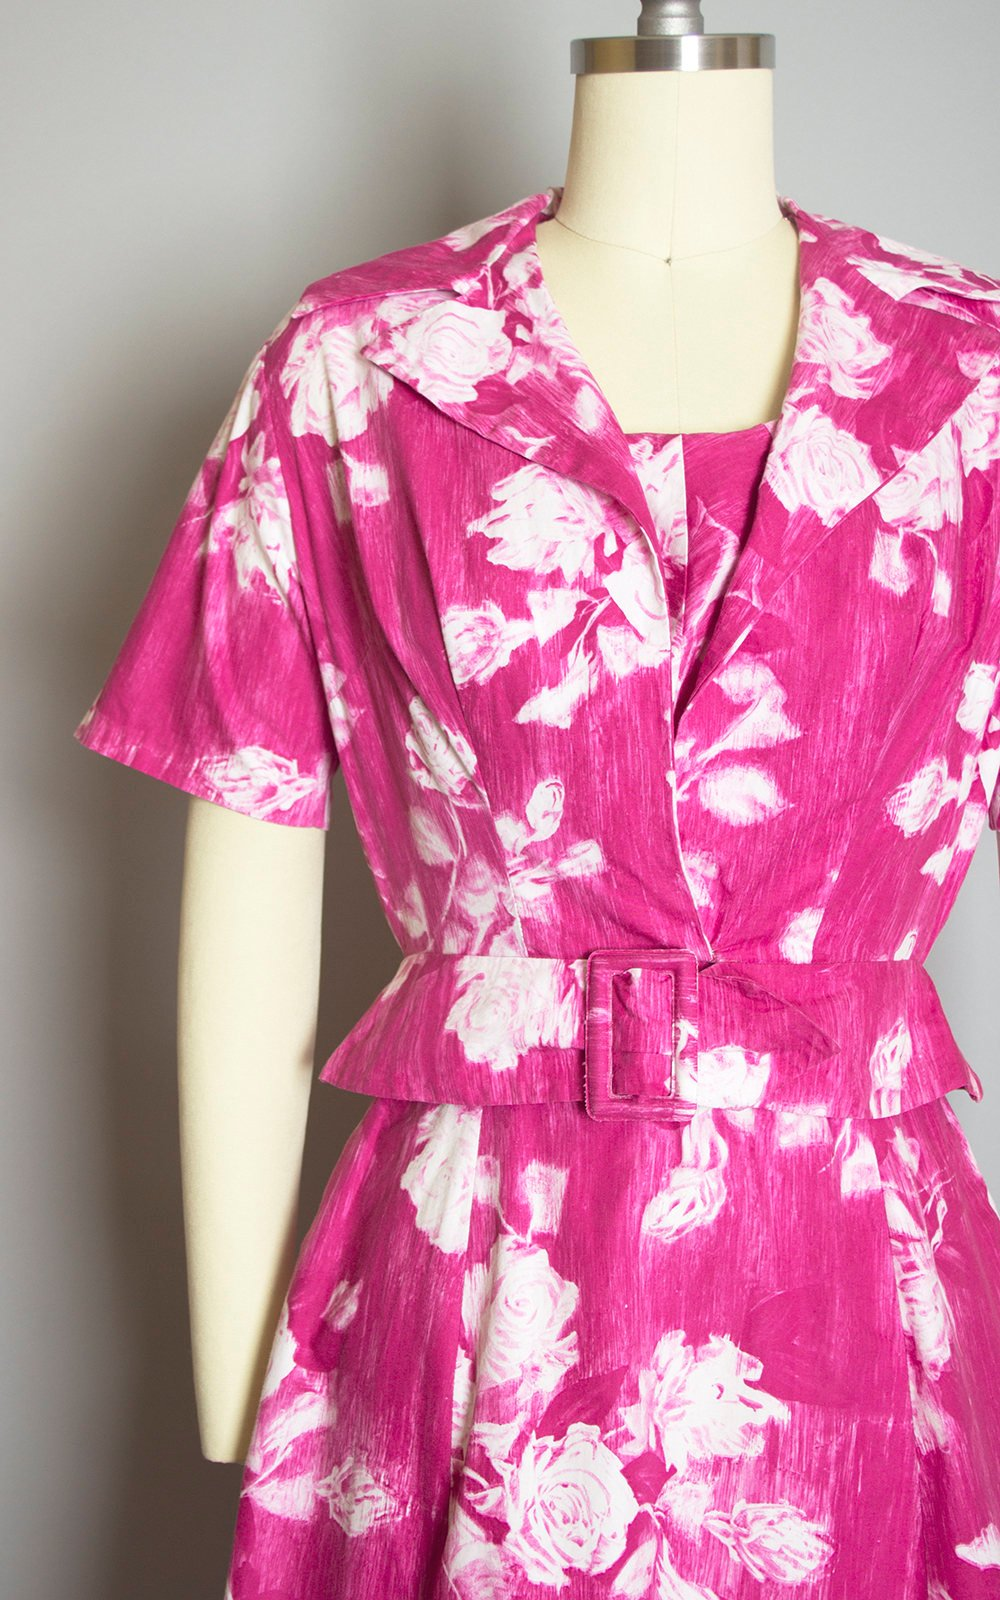 Vintage 1950s Dress Set | 50s Rose Floral Print Cotton Hot Pink Full Skirt Sundress Matching Bolero Jacket (xs)